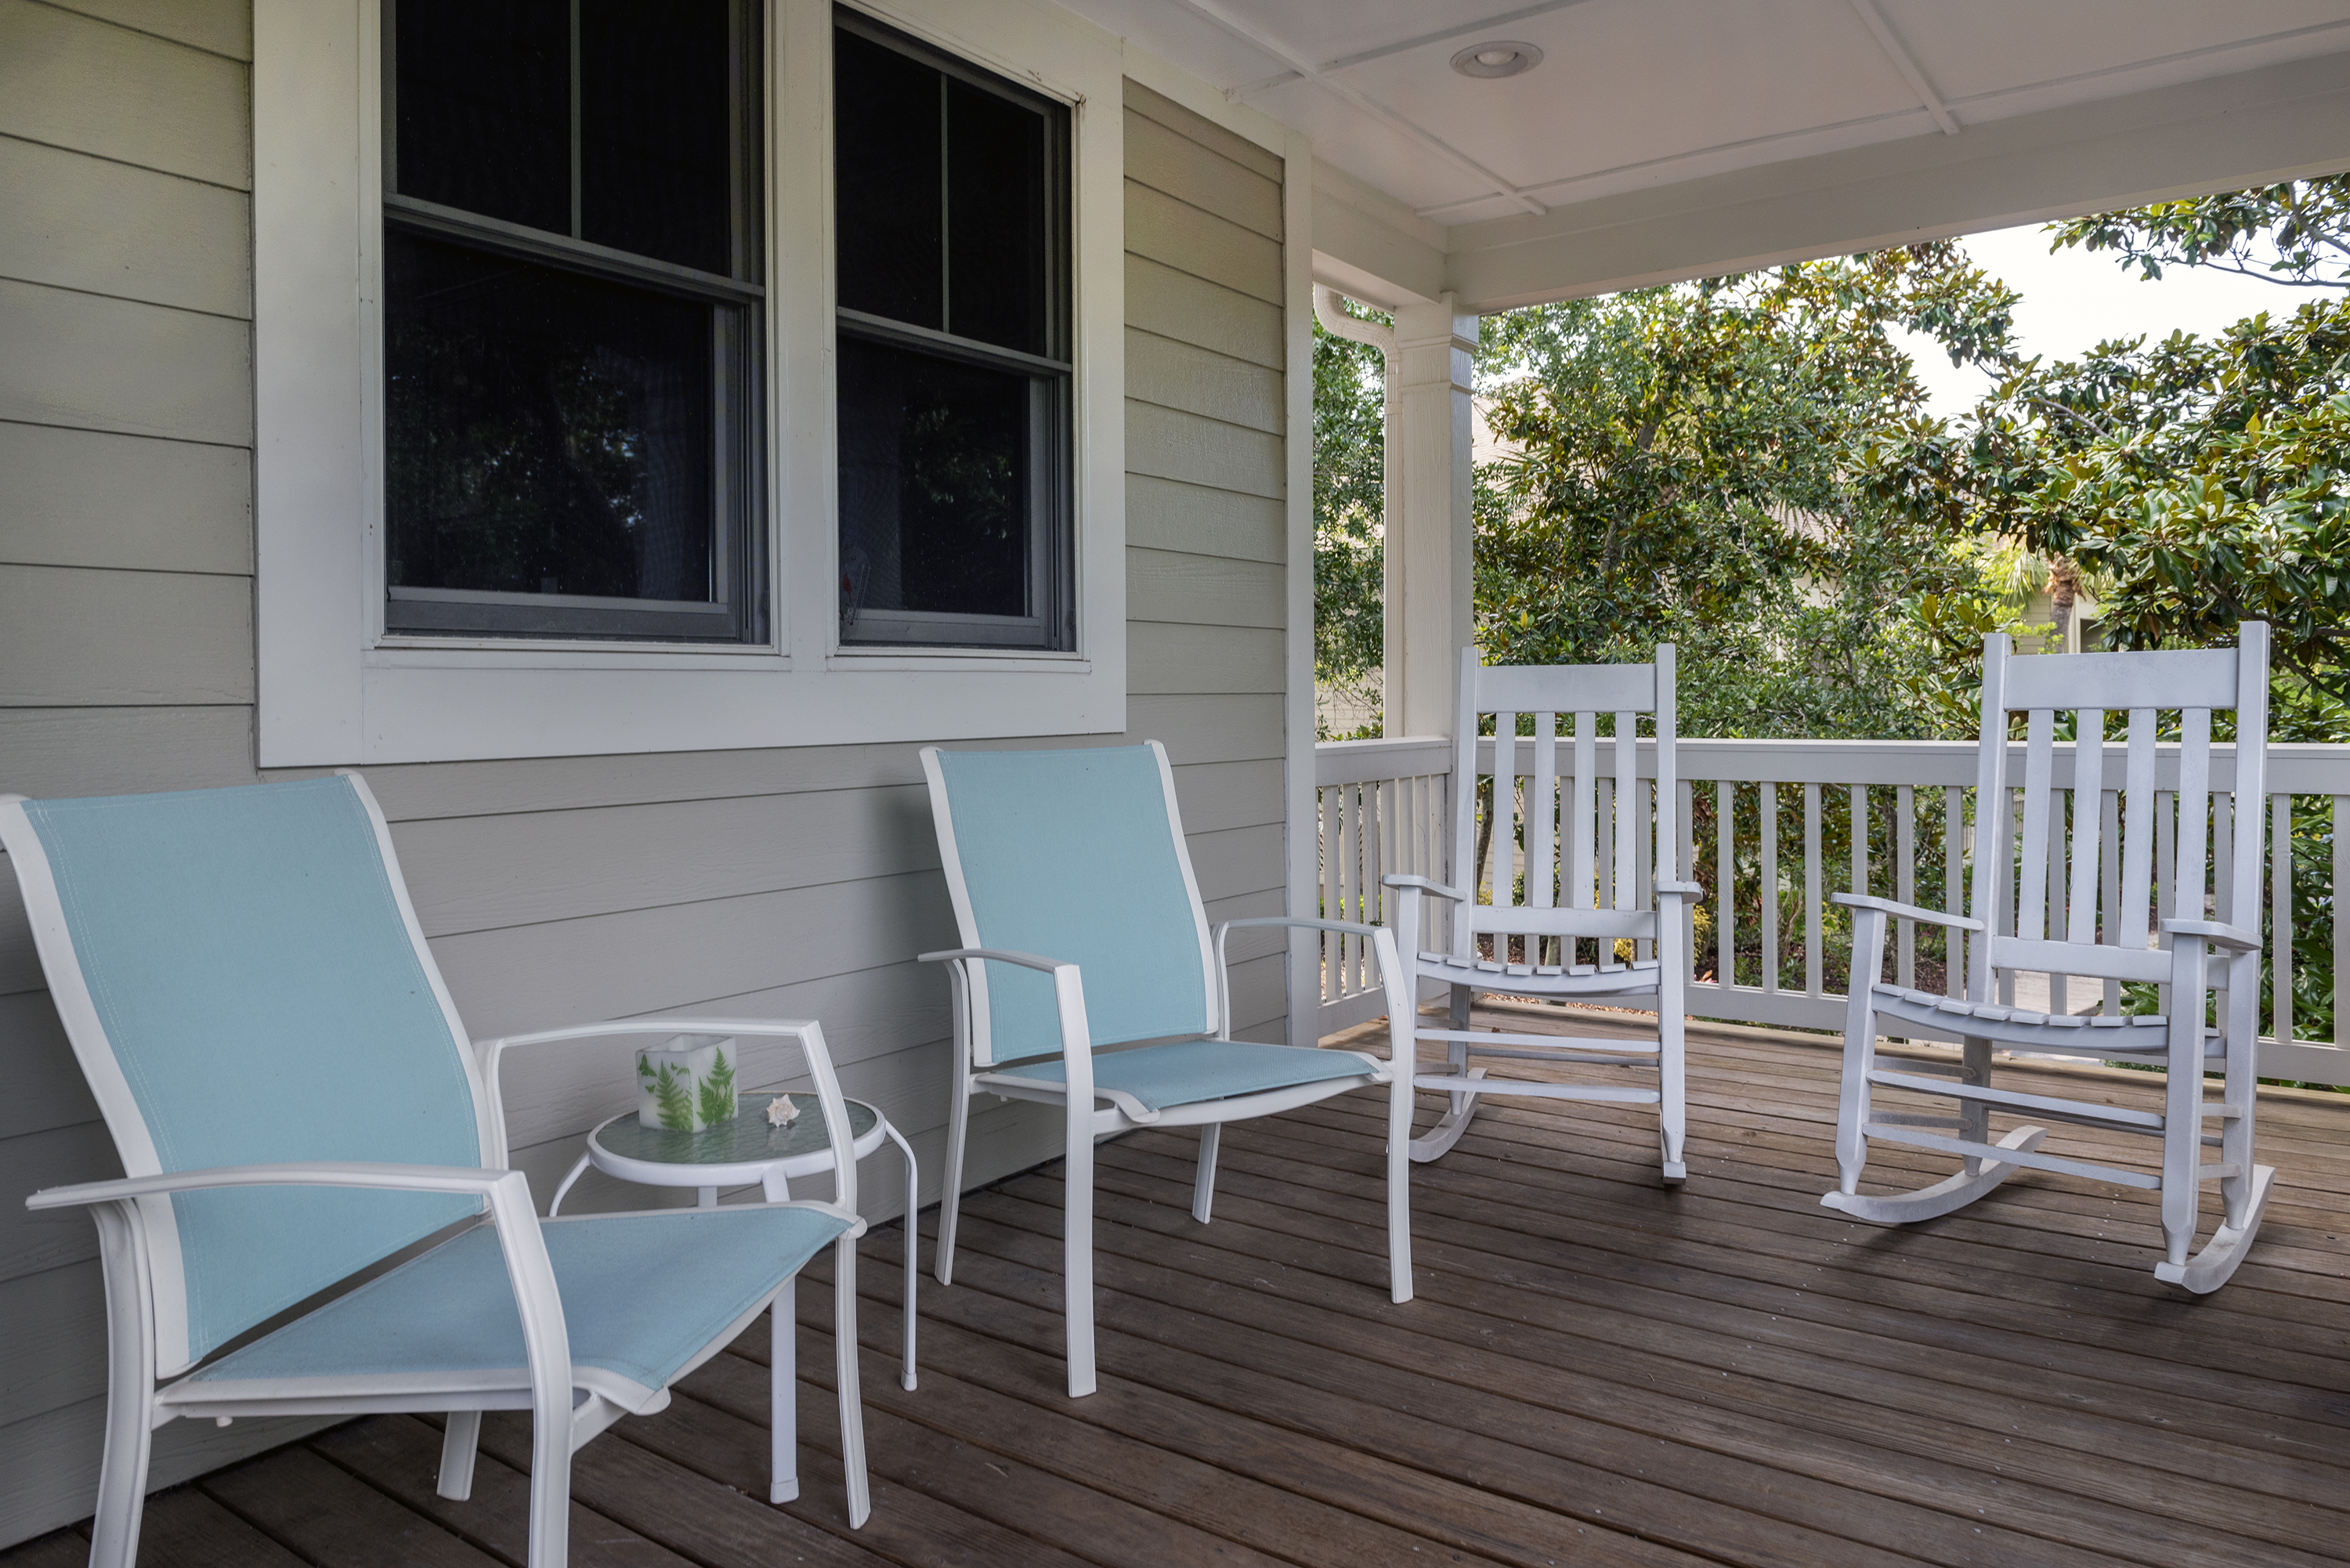 Great front porch!